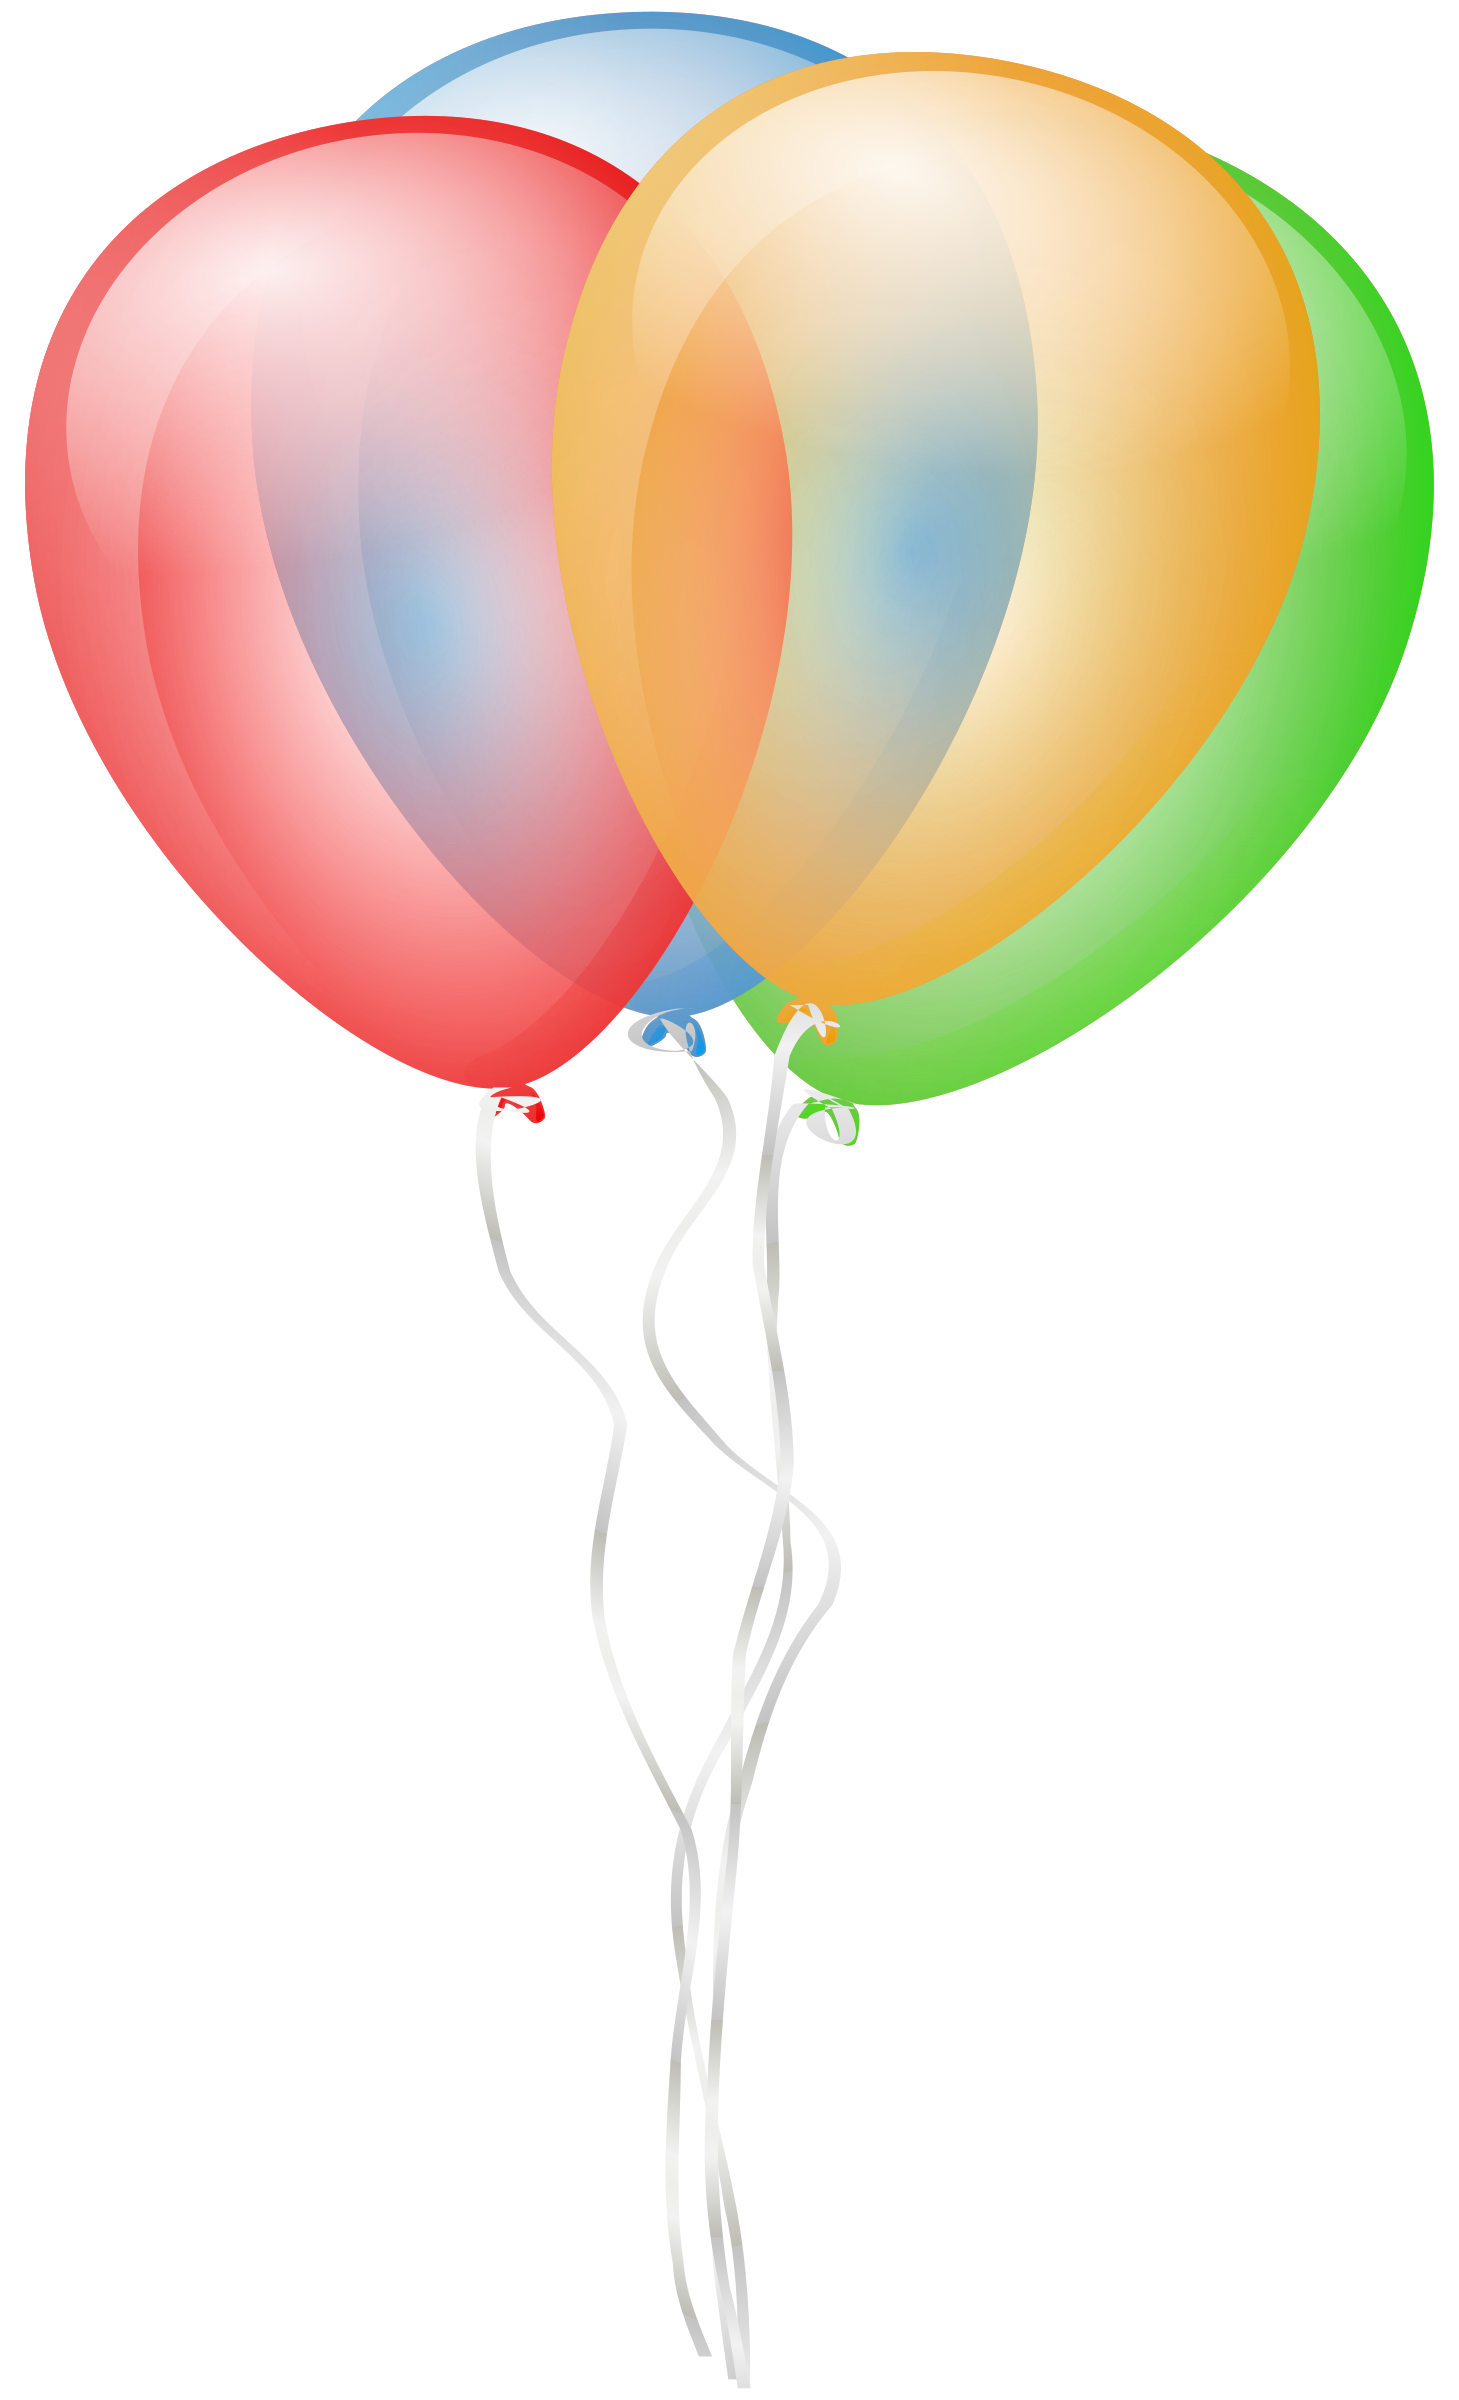 clipart balloons and streamers - photo #45